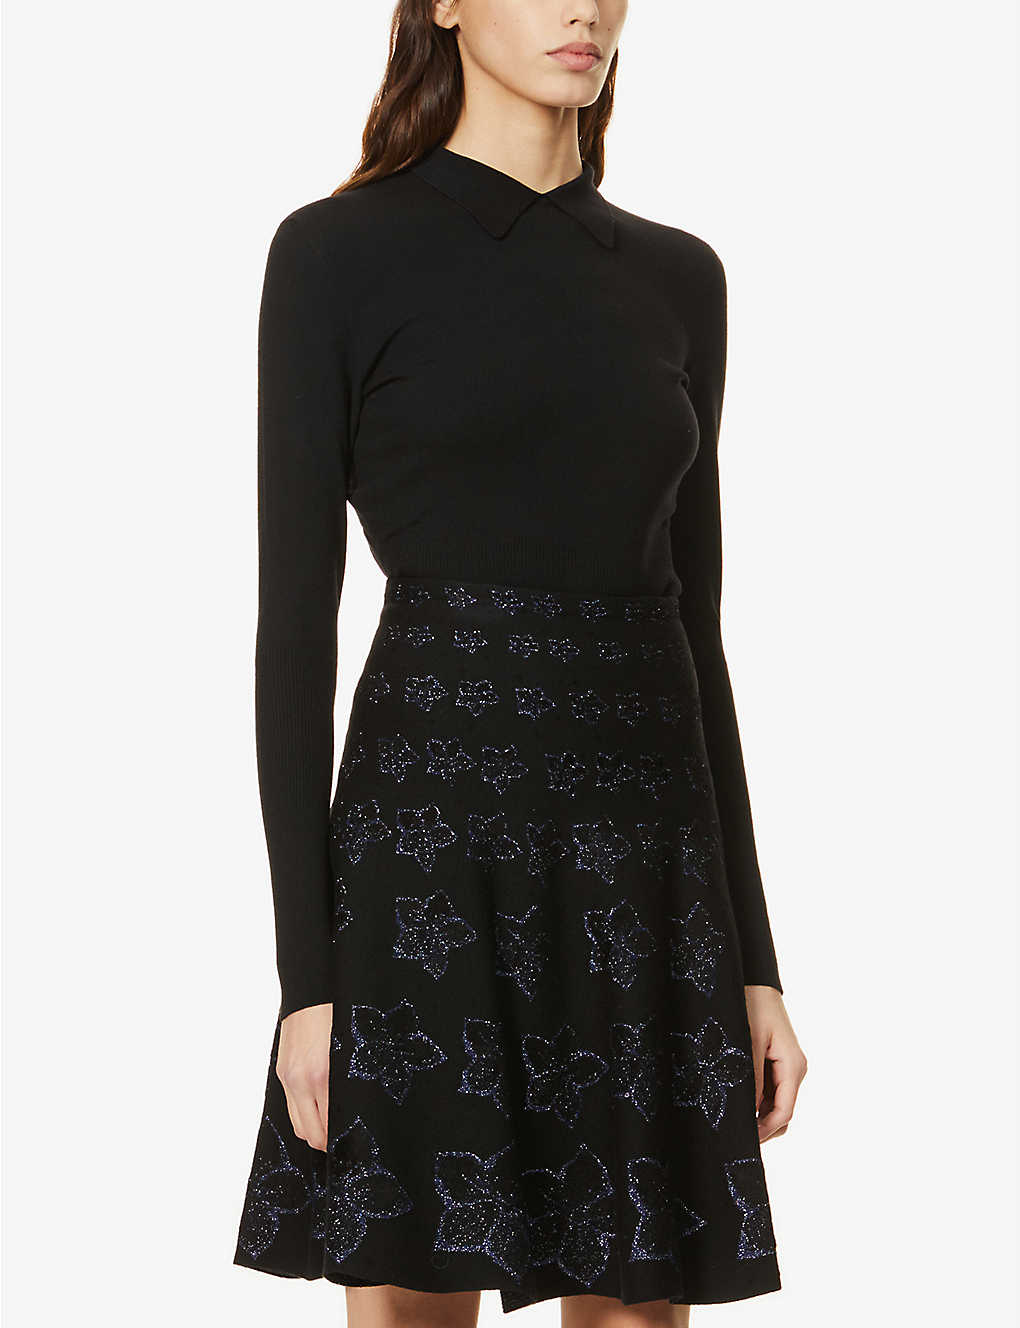 AZZEDINE ALAIA: Long-sleeved wool-blend top